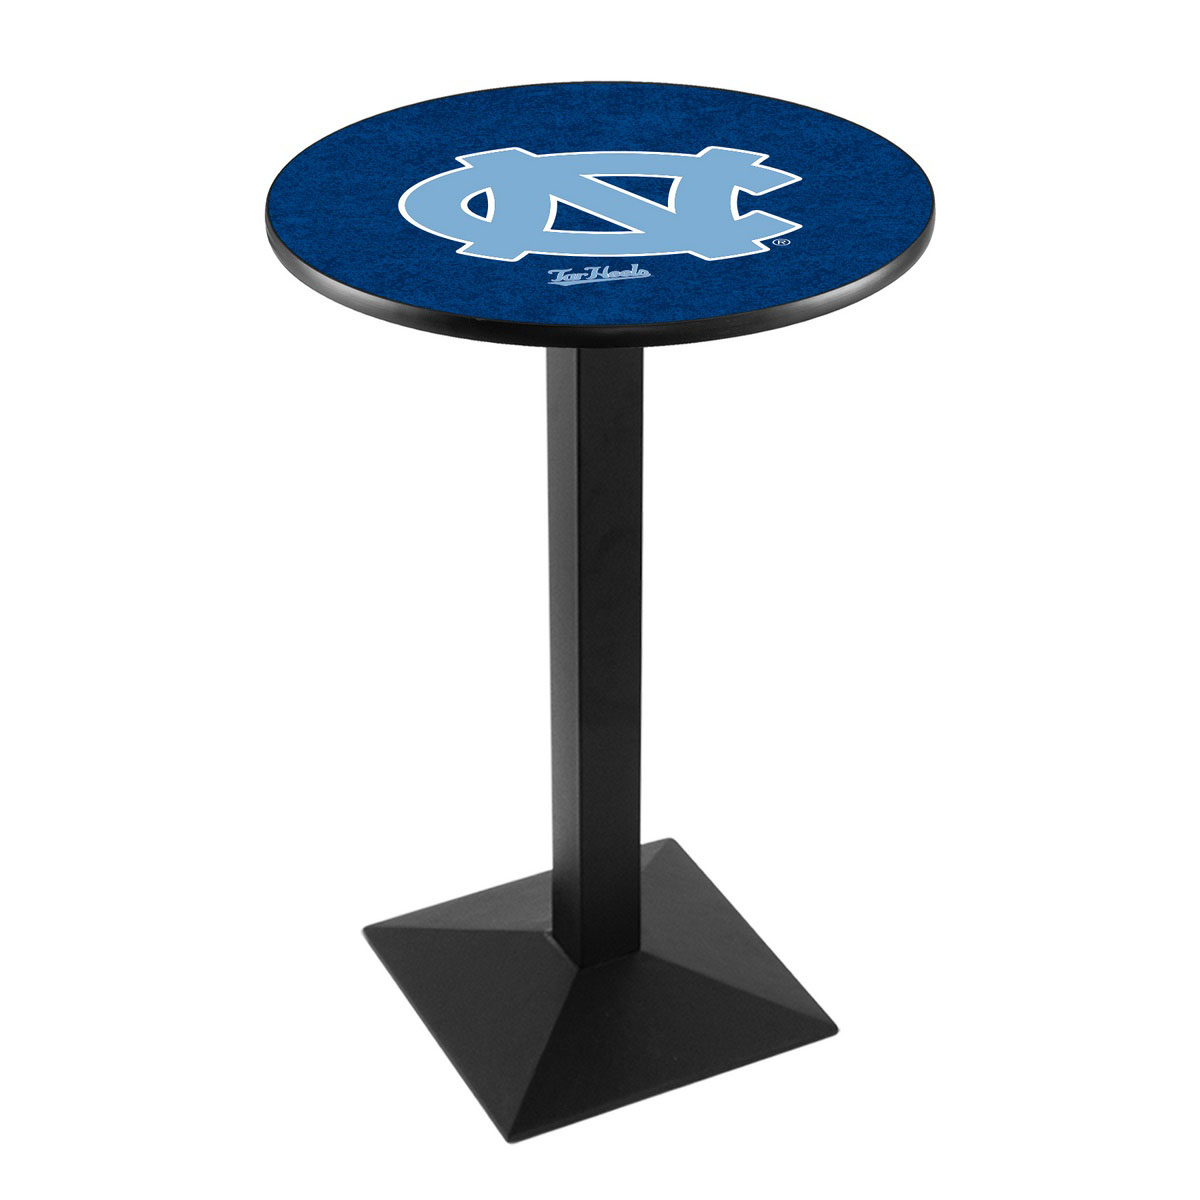 New University North Carolina Logo Pub Bar Table Square Stand Product Photo